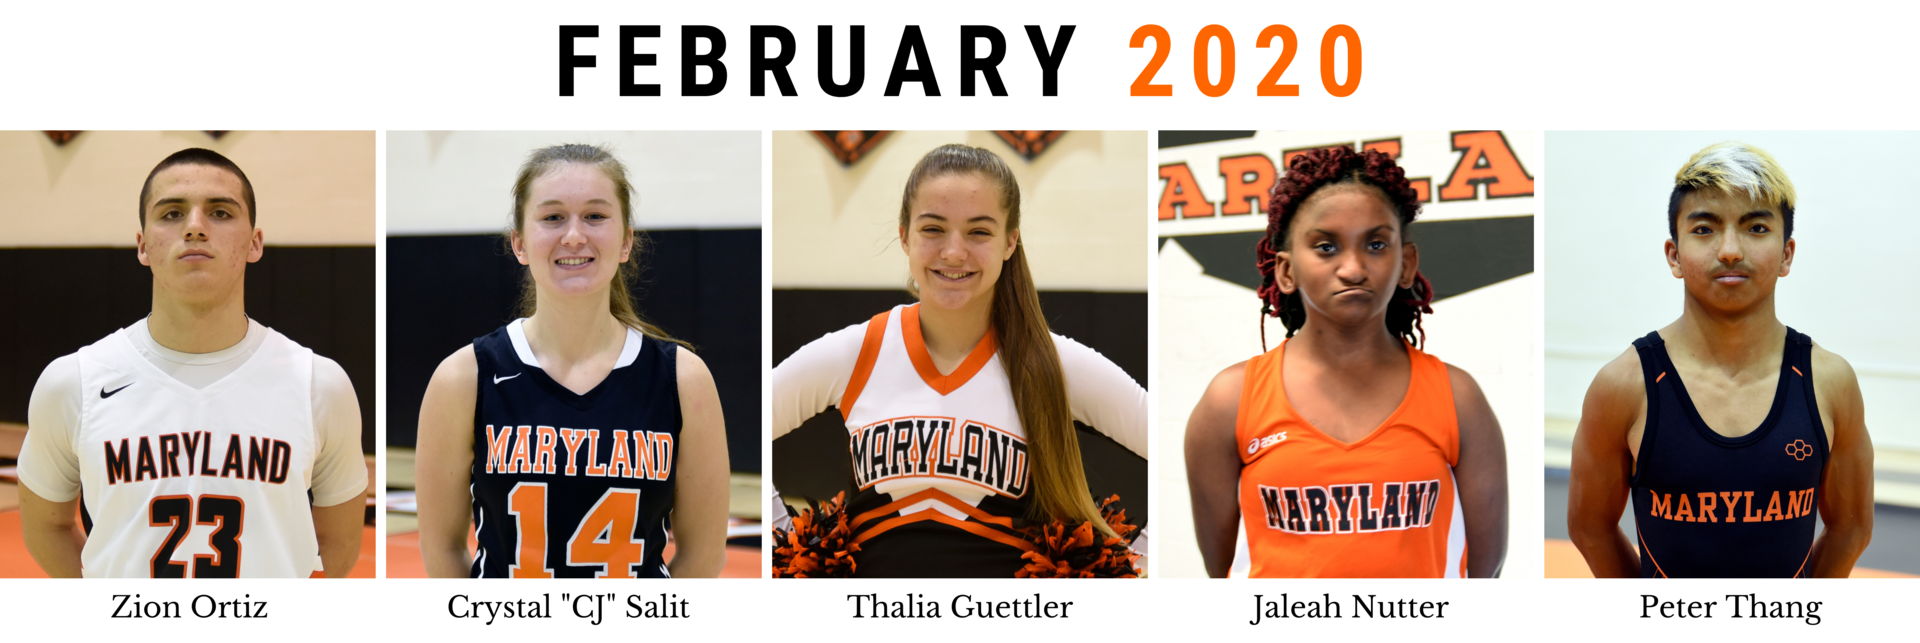 February Athletes of the Month